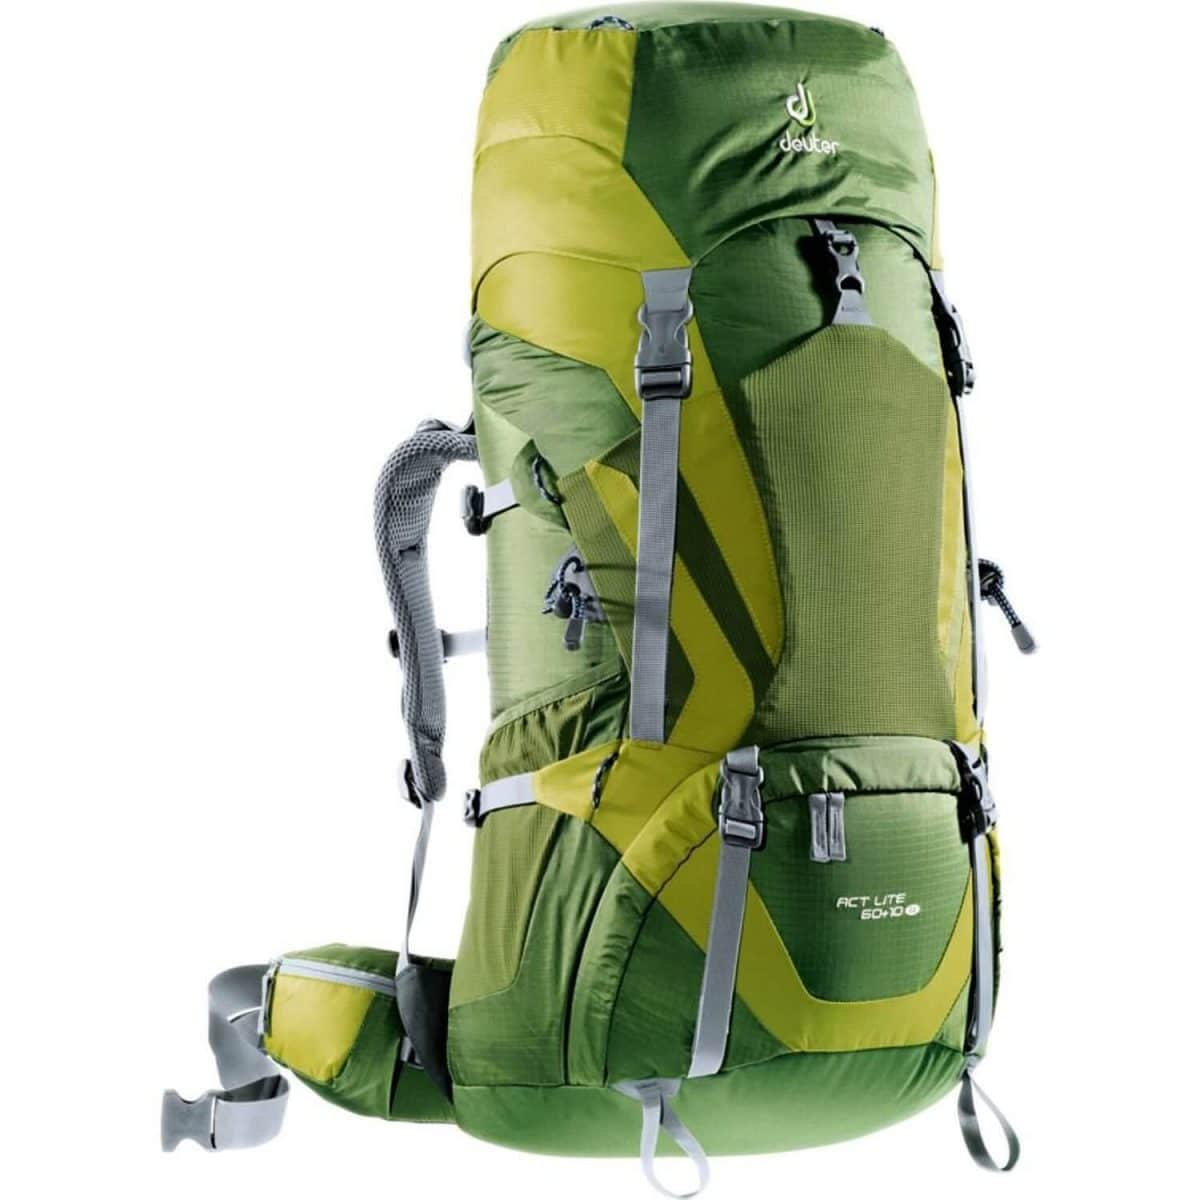 Deuter 70L Hiking Backpack